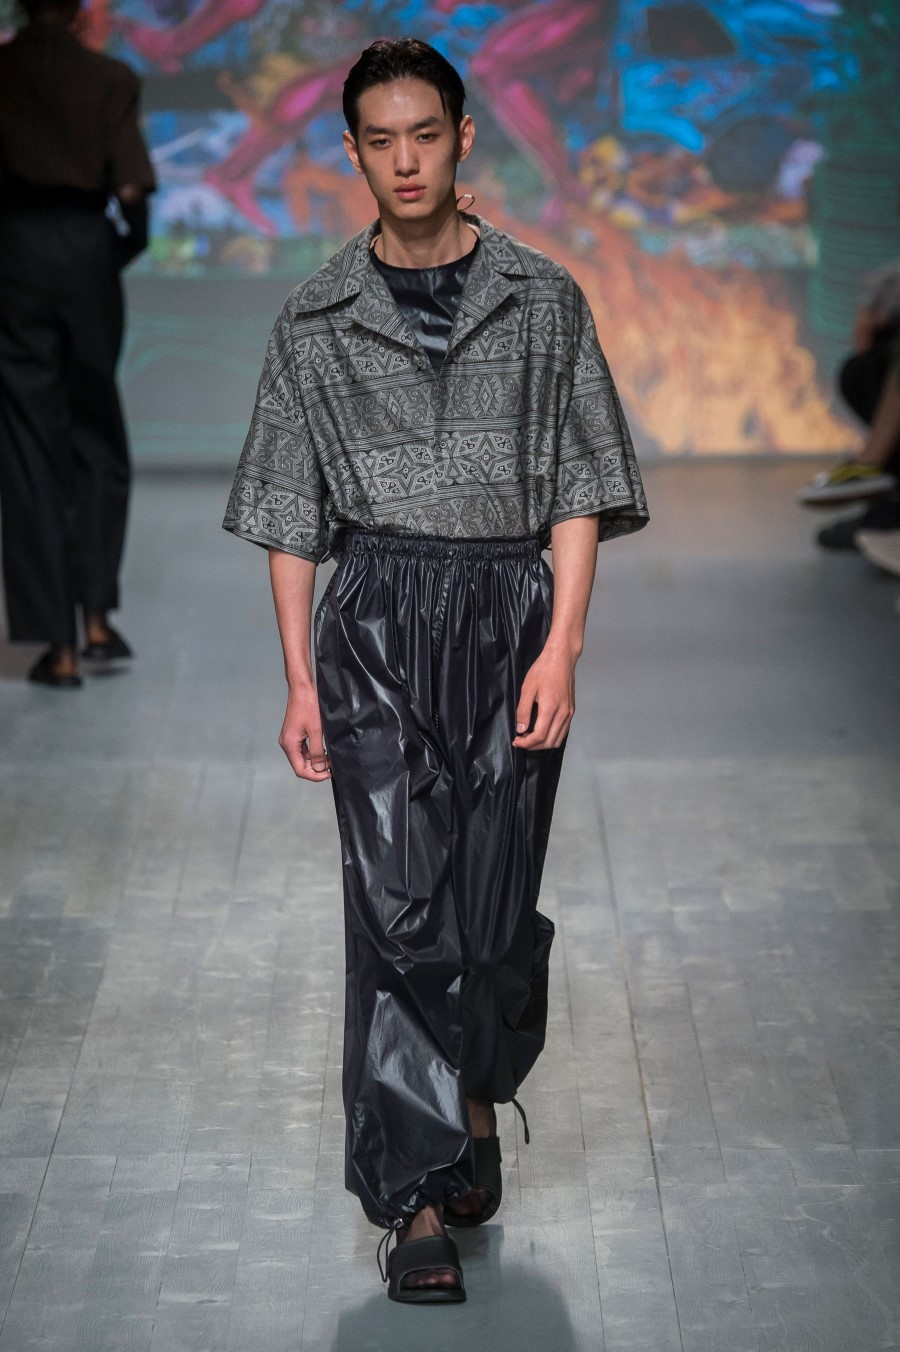 Edward Crutchley Printemps/Été 2019 - London Fashion Week Men's